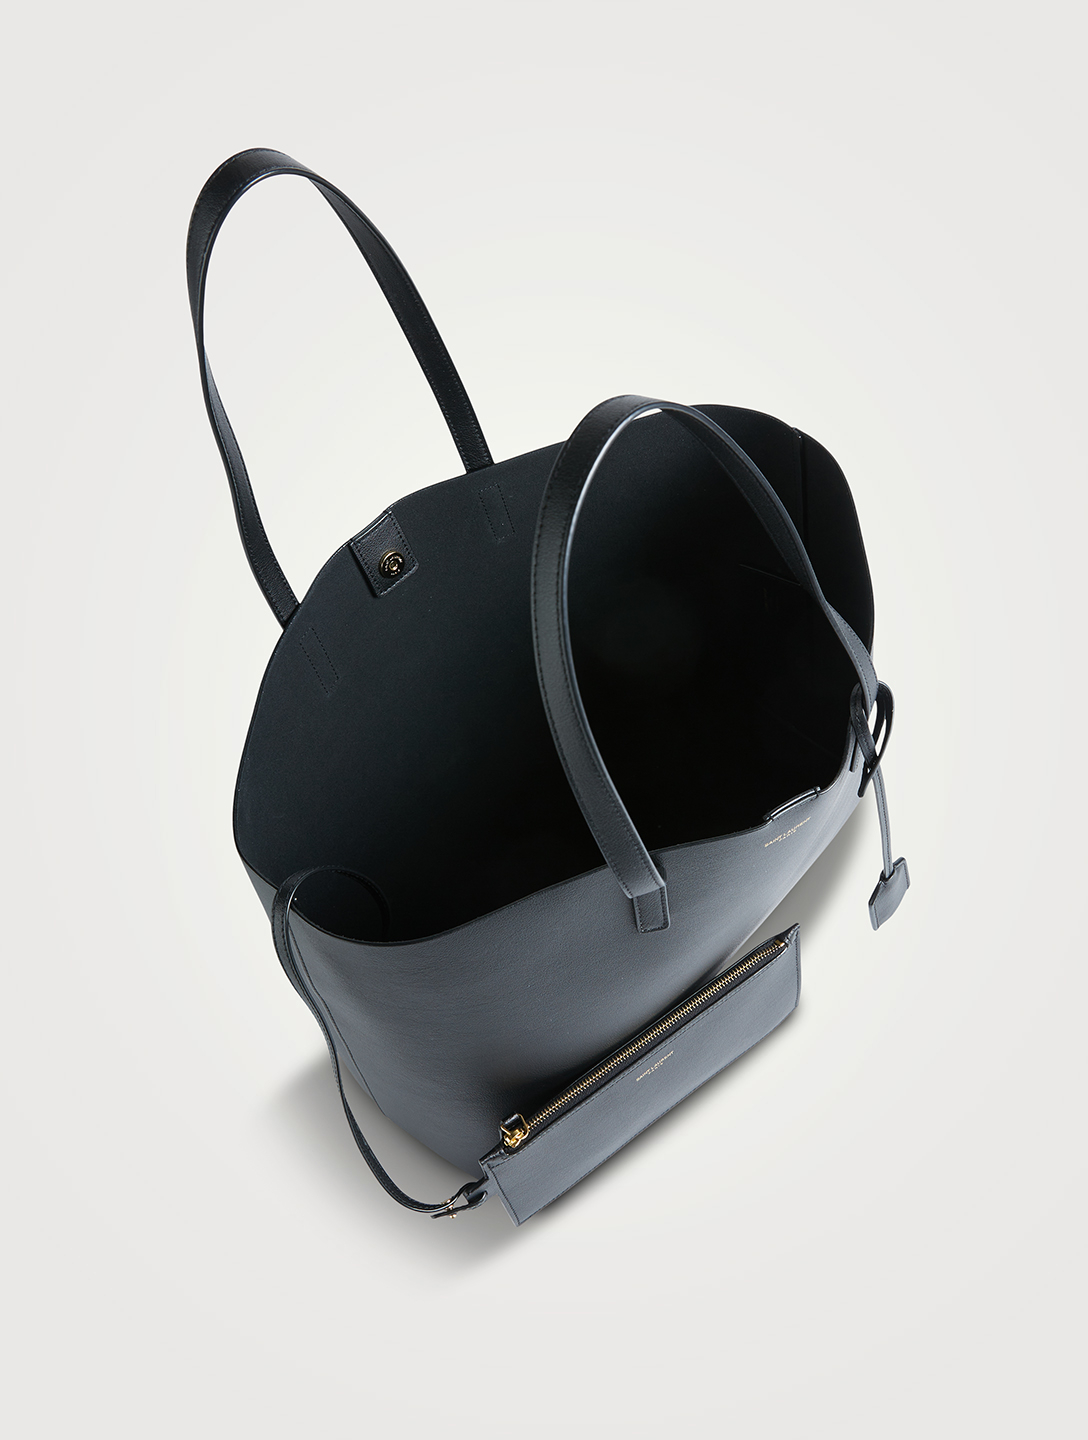 SAINT LAURENT E/W Shopping Leather Tote Bag Women's Black